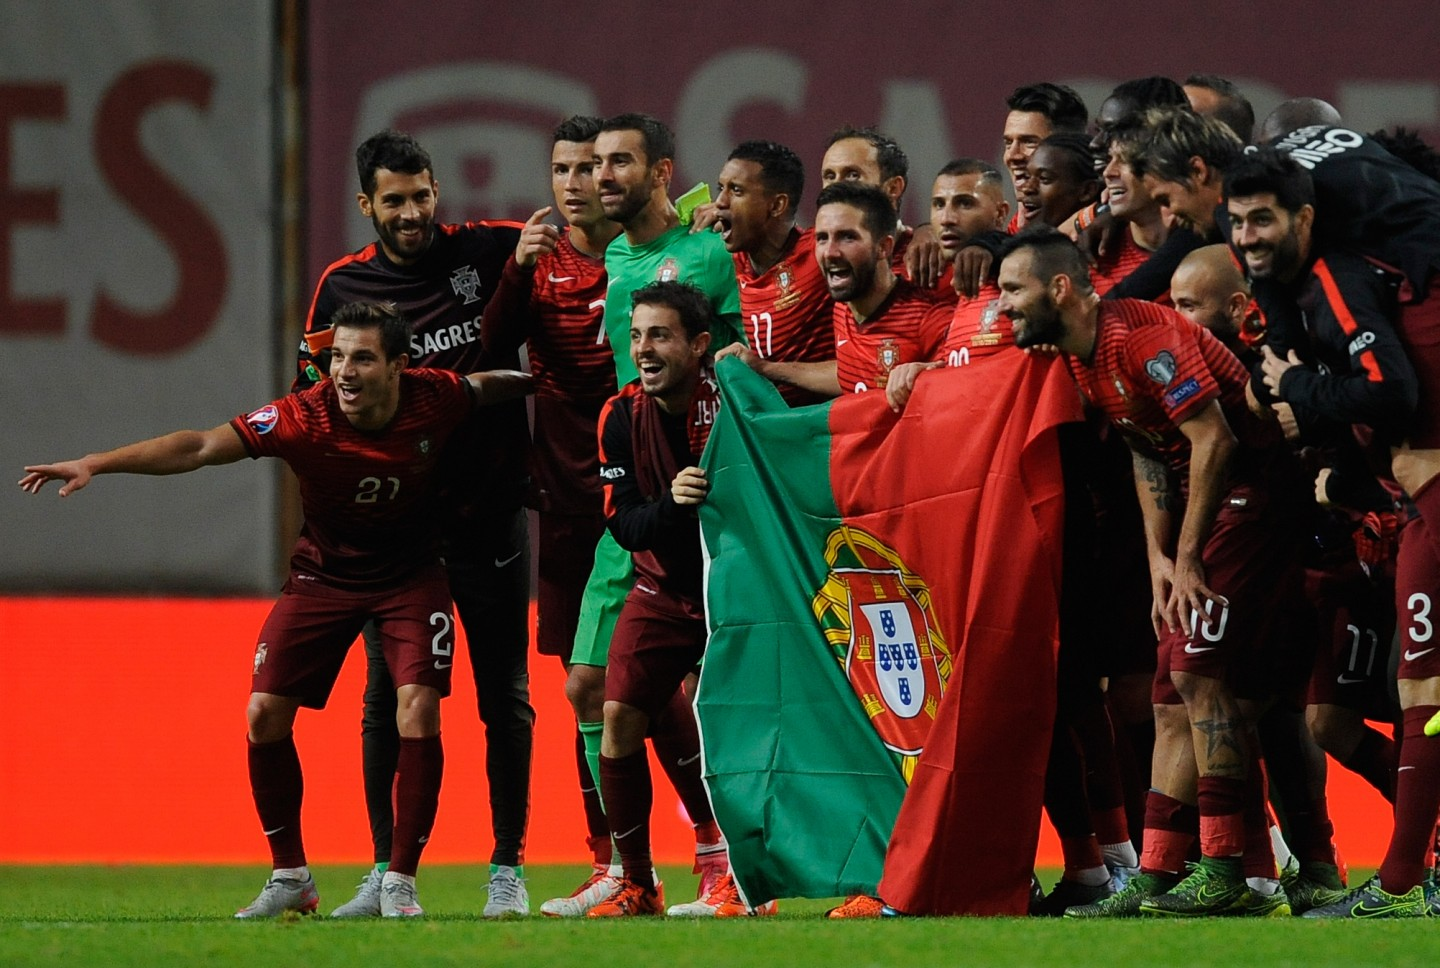 Portugal VS USA ( BETTING TIPS, Match Preview & Expert Analysis )